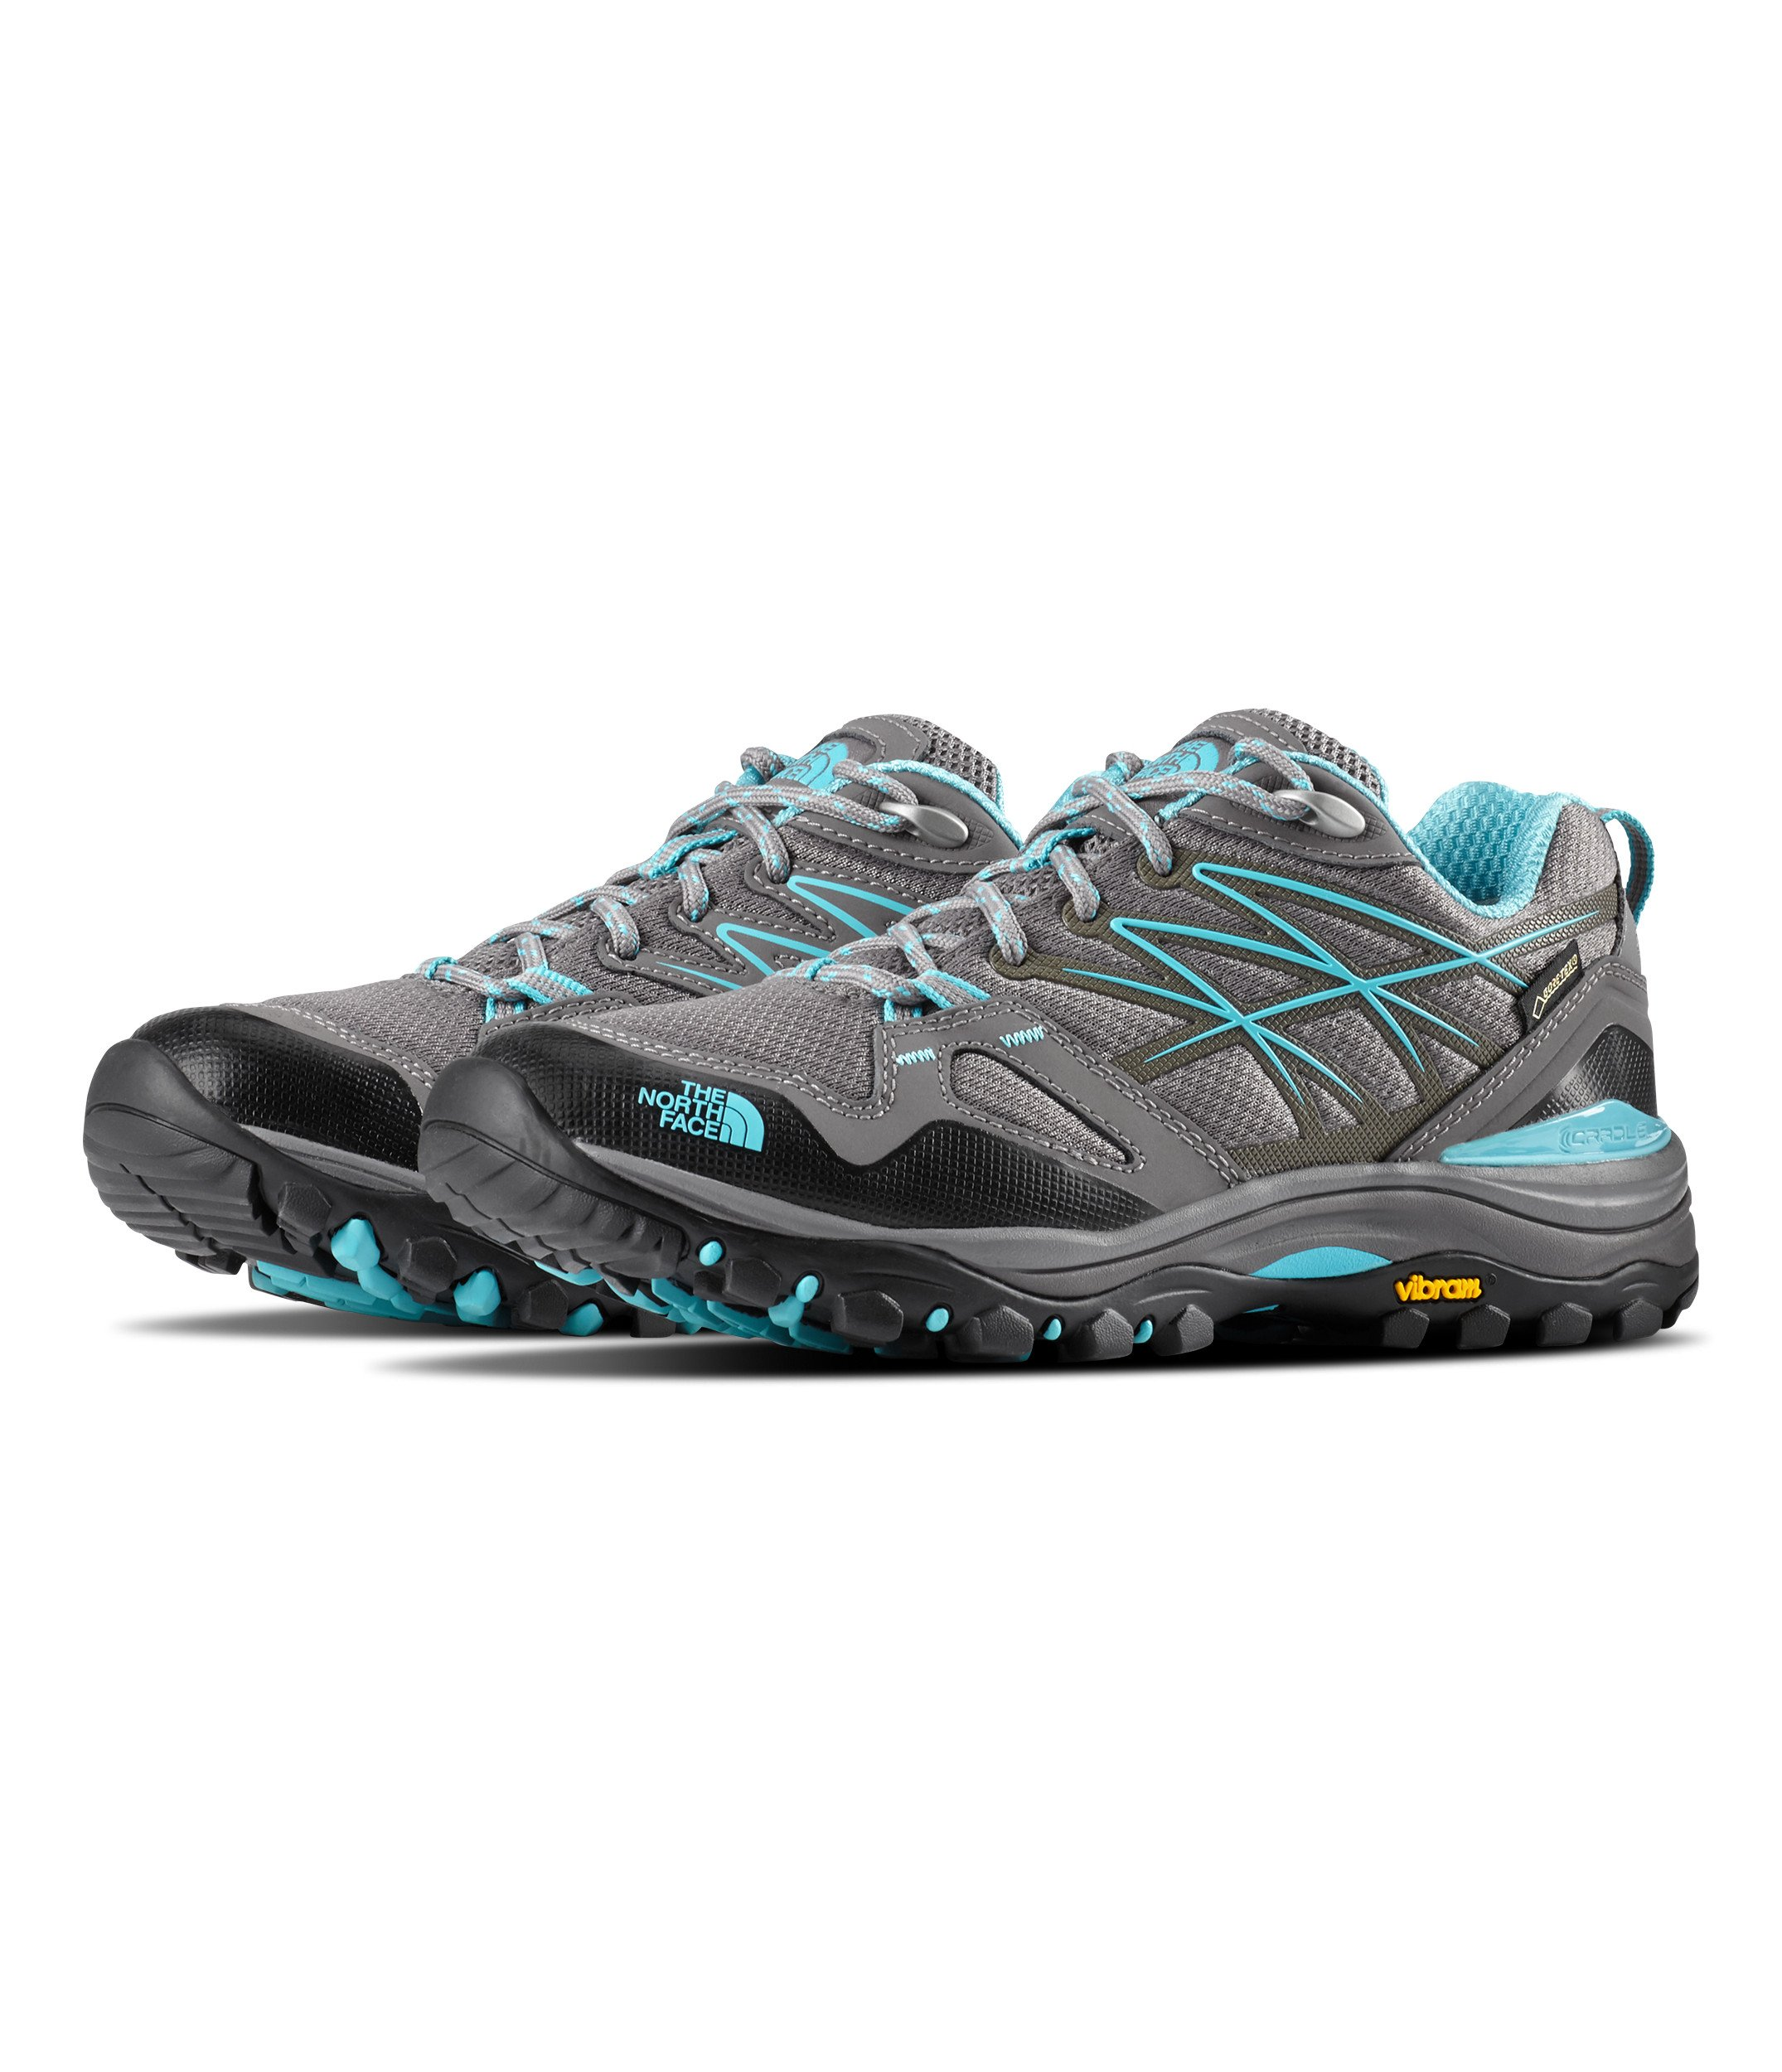 The North Face Hedgehog Fastpack GTX Hiking Shoe - Women's Dark Gull Grey/Fortuna Blue 11